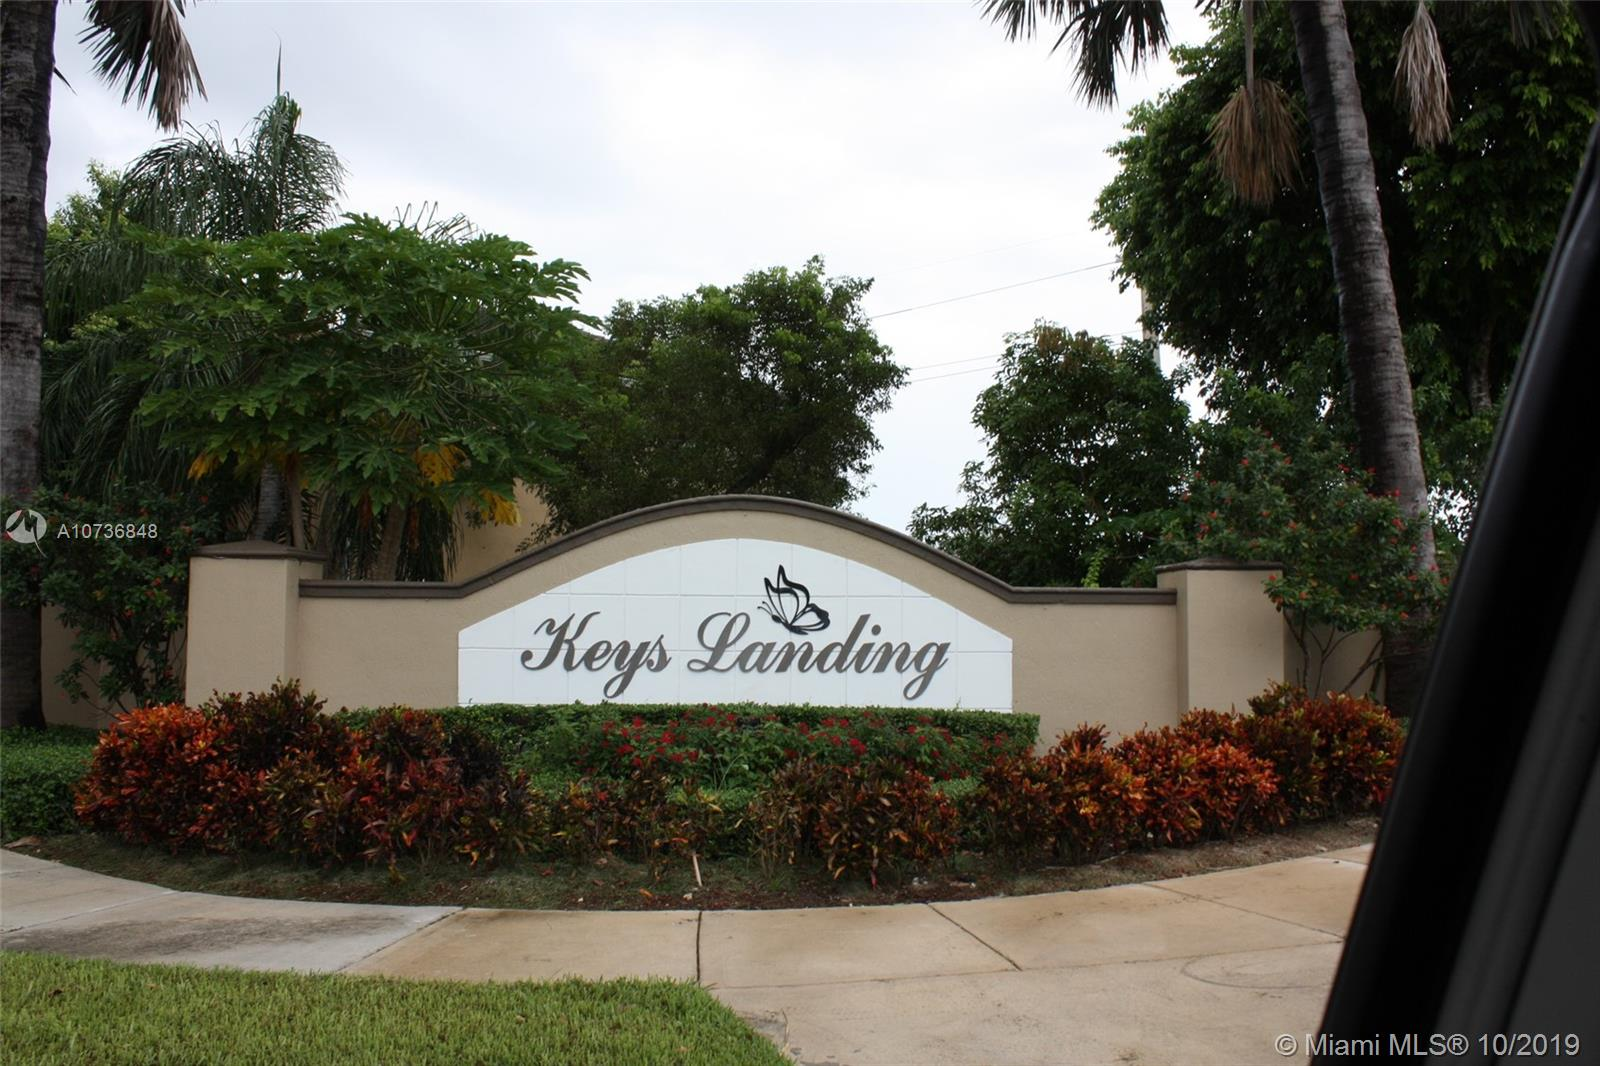 BEAUTIFUL RENTAL IN KEYS LANDING. 4 BEDROOMS 2 1/2 BATHROOMS AND 2 CAR GARAGE. TILE IN THE WHOLE HOUSE, EXCELLENT FLOOR PLAN. GRAT FOR BIG FAMILY. CLOSE TO SHOPPING CENTERS GREAT SCHOOLS . RENT WILL INCLUDED AT&T UVERSE 200. INTERNET, ALARM SYSTEM RIGTH TO USED 8 TENNIS COURTS AND RACKETBALL COURTS ALSO 24 HRS GATED COMMUNITY. VERY SAFE. THE APPLIENCES WILL BE UPGRADED.